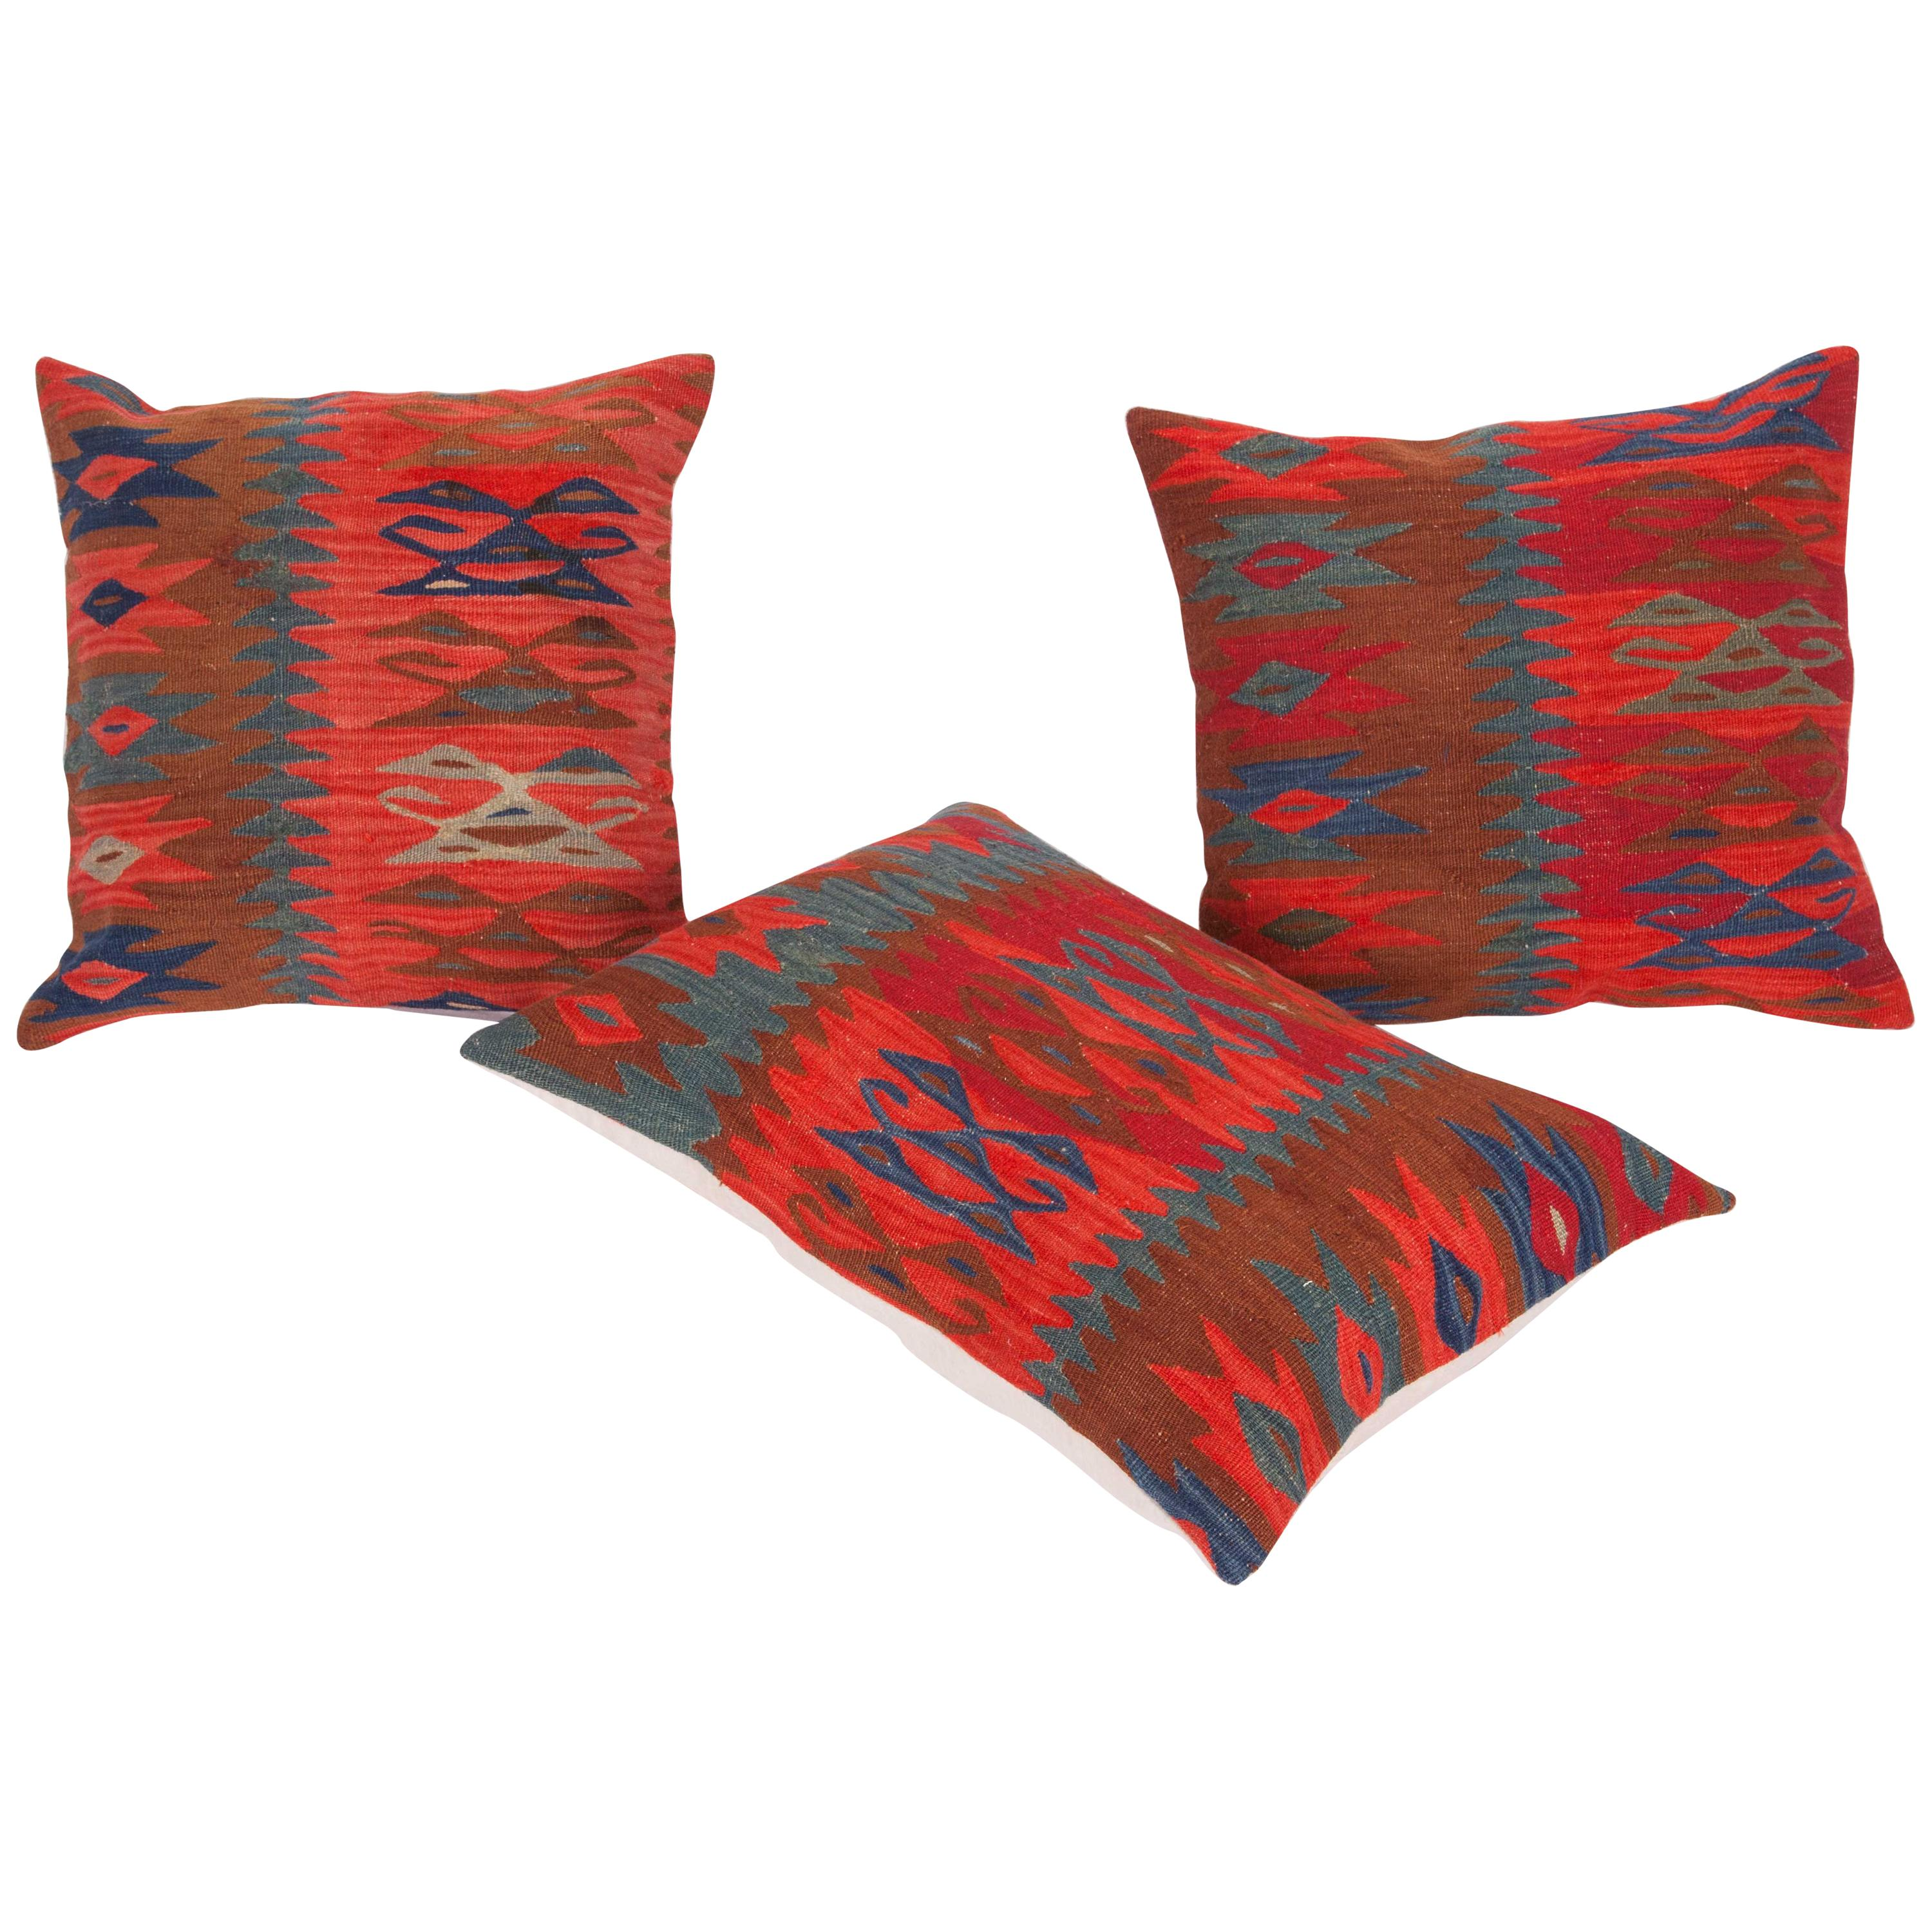 Antique Kilim Pillow Cases Fashioned from a Late 19th Century, Sharkoy Kilim